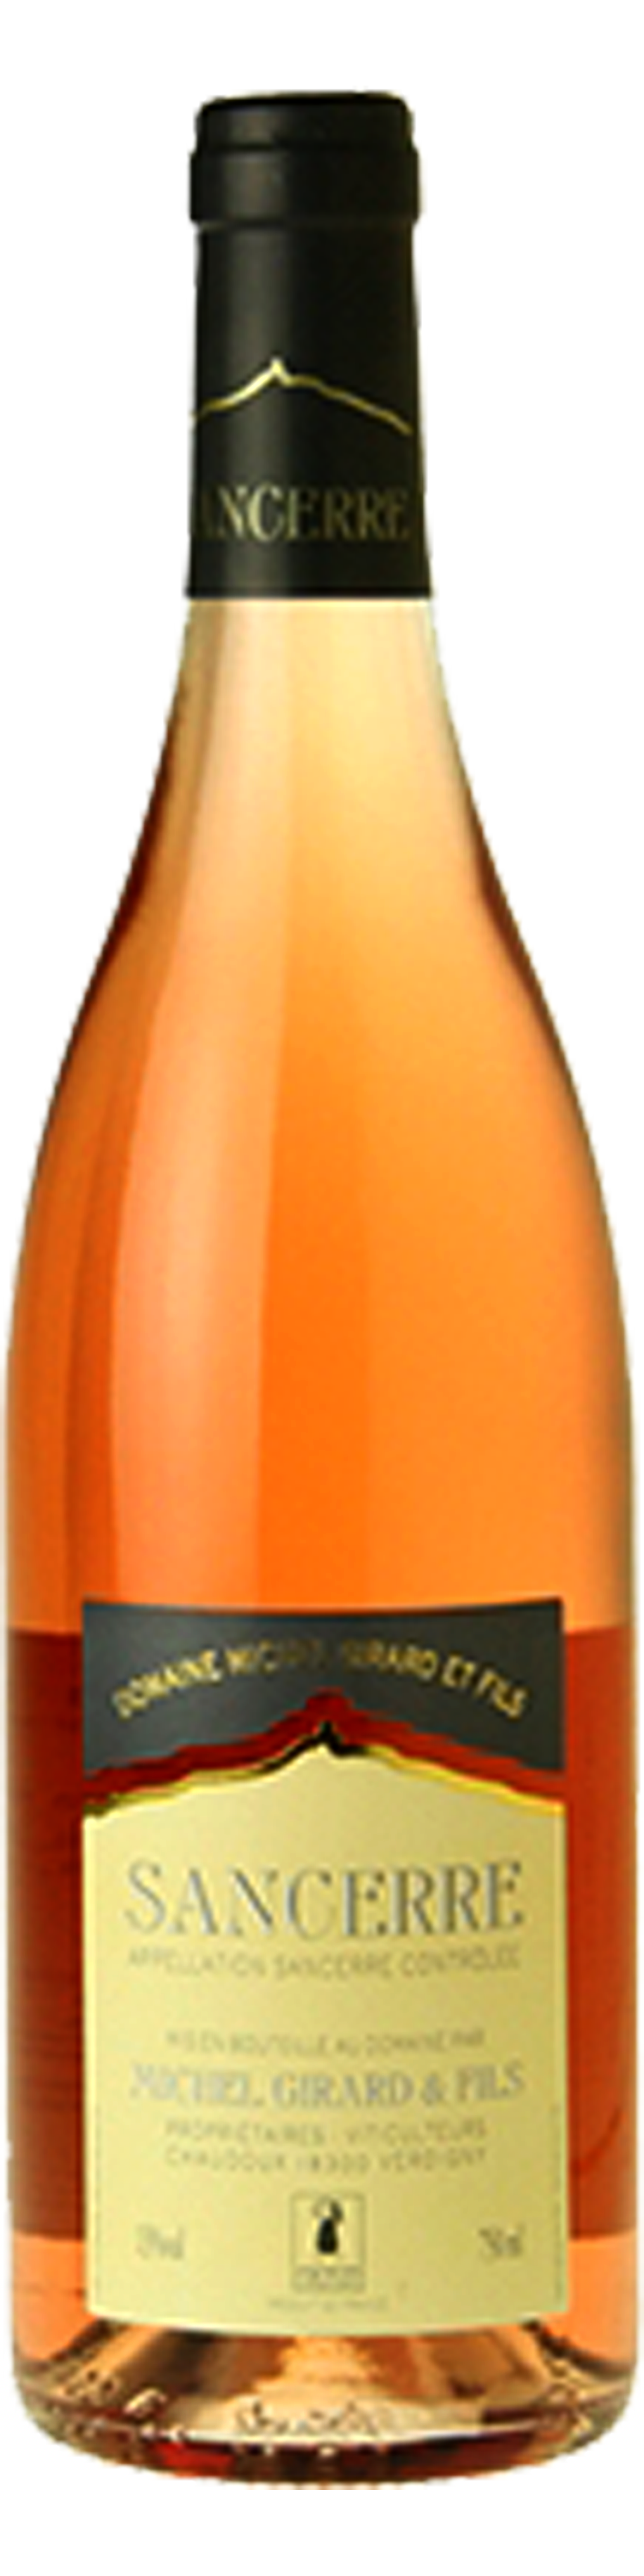 Image of product Sancerre Rosé